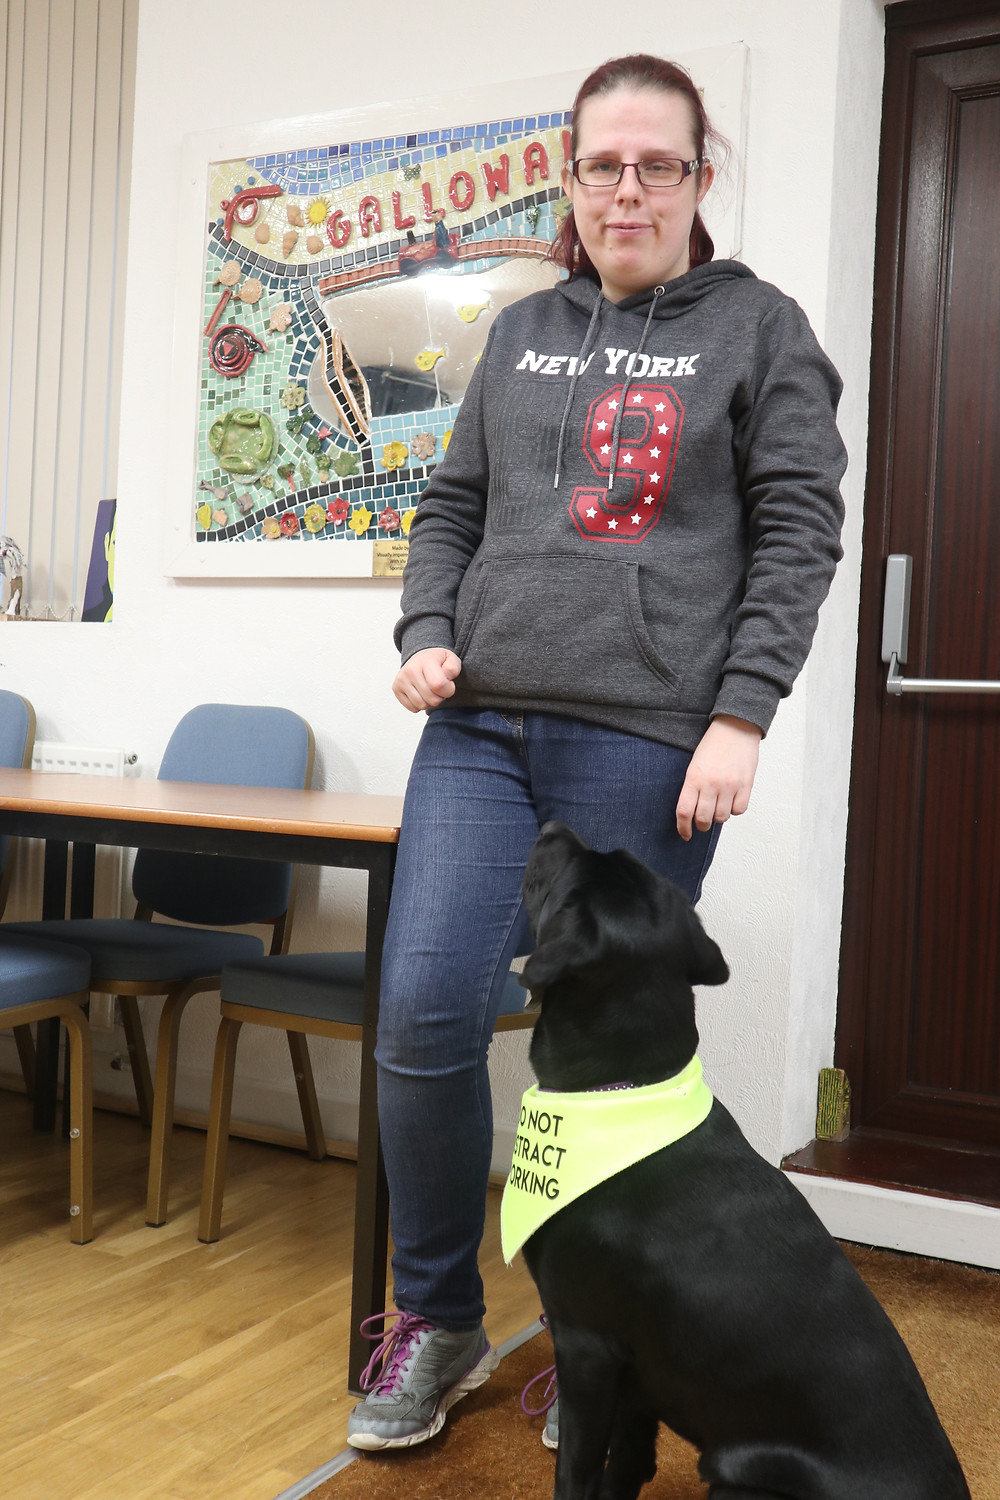 Helen Colson stood up with her guide dog Kelly. Kelly is wearing a fluorescent yellow vest. Behind them is a mosaic created by the art group